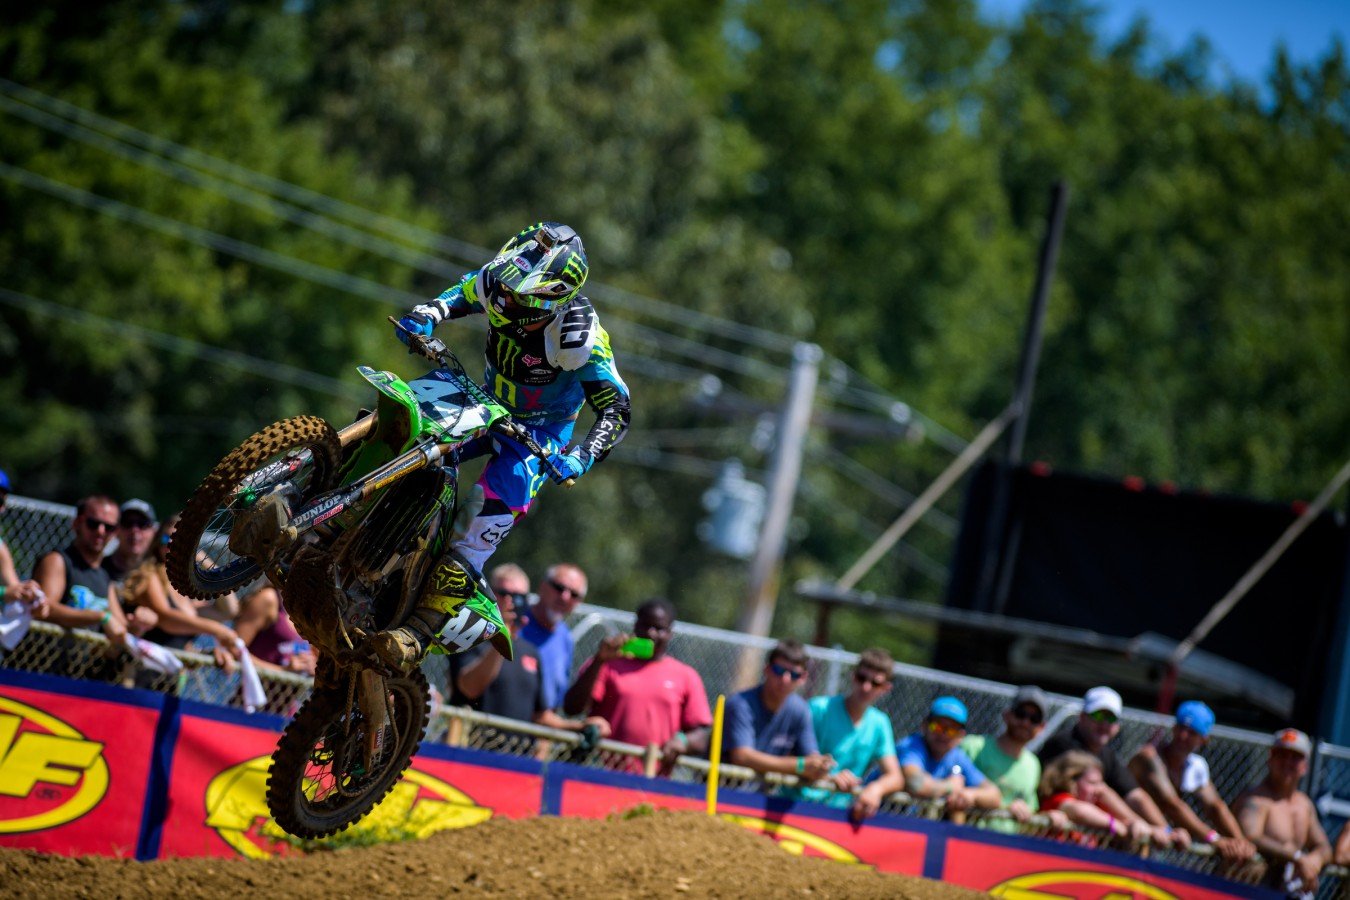 Adam Cianciarulo during the 2016 Pro MX Nationals in Budds Creek Raceway - Mechanicsville, MD